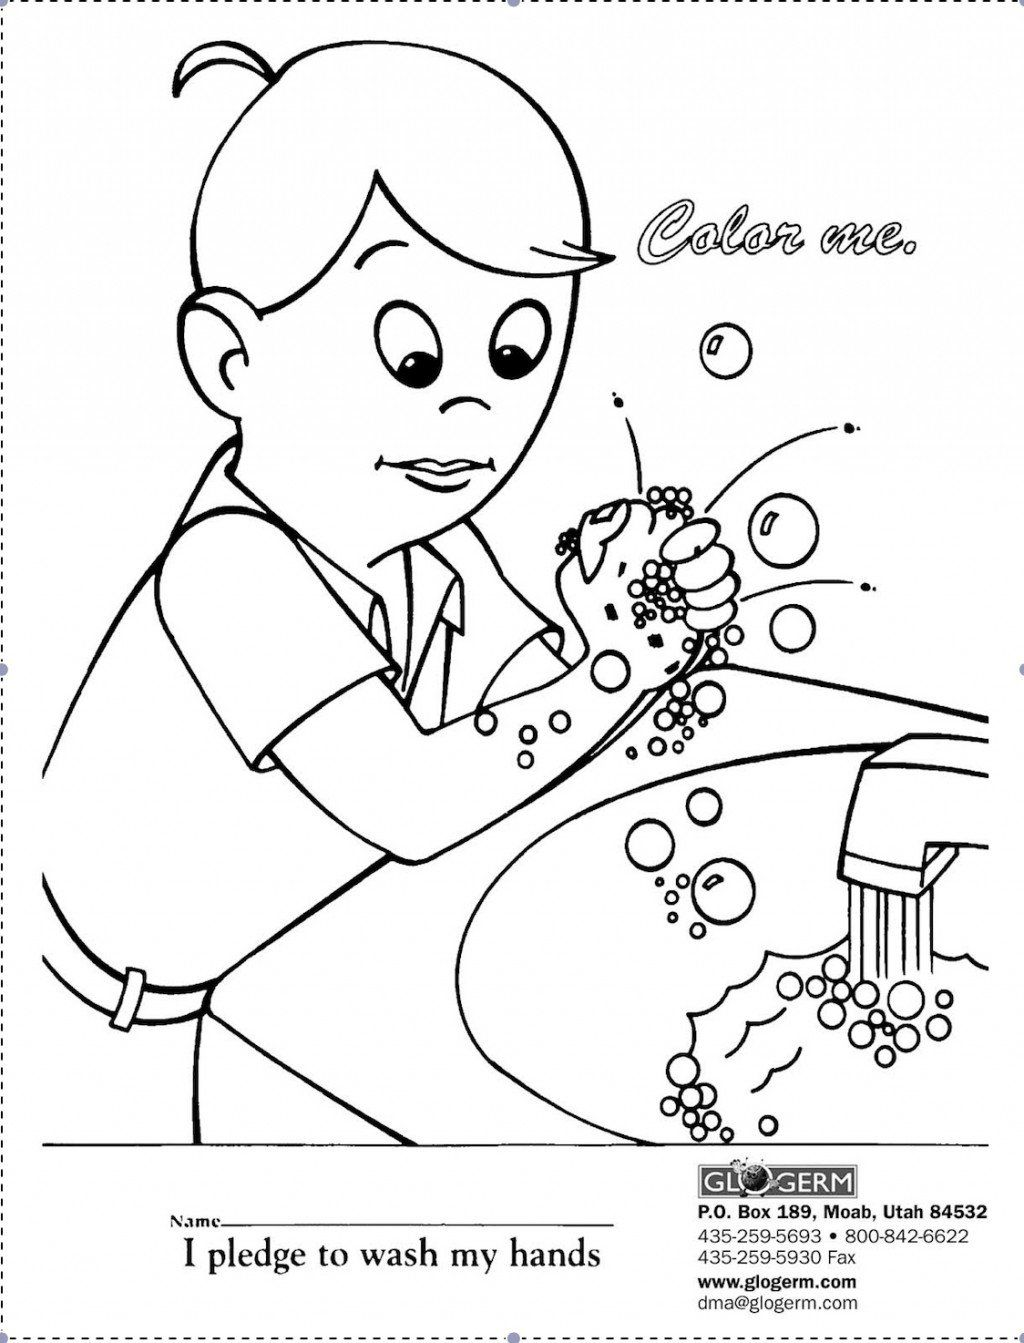 germ coloring page - Washing Hands Coloring Page